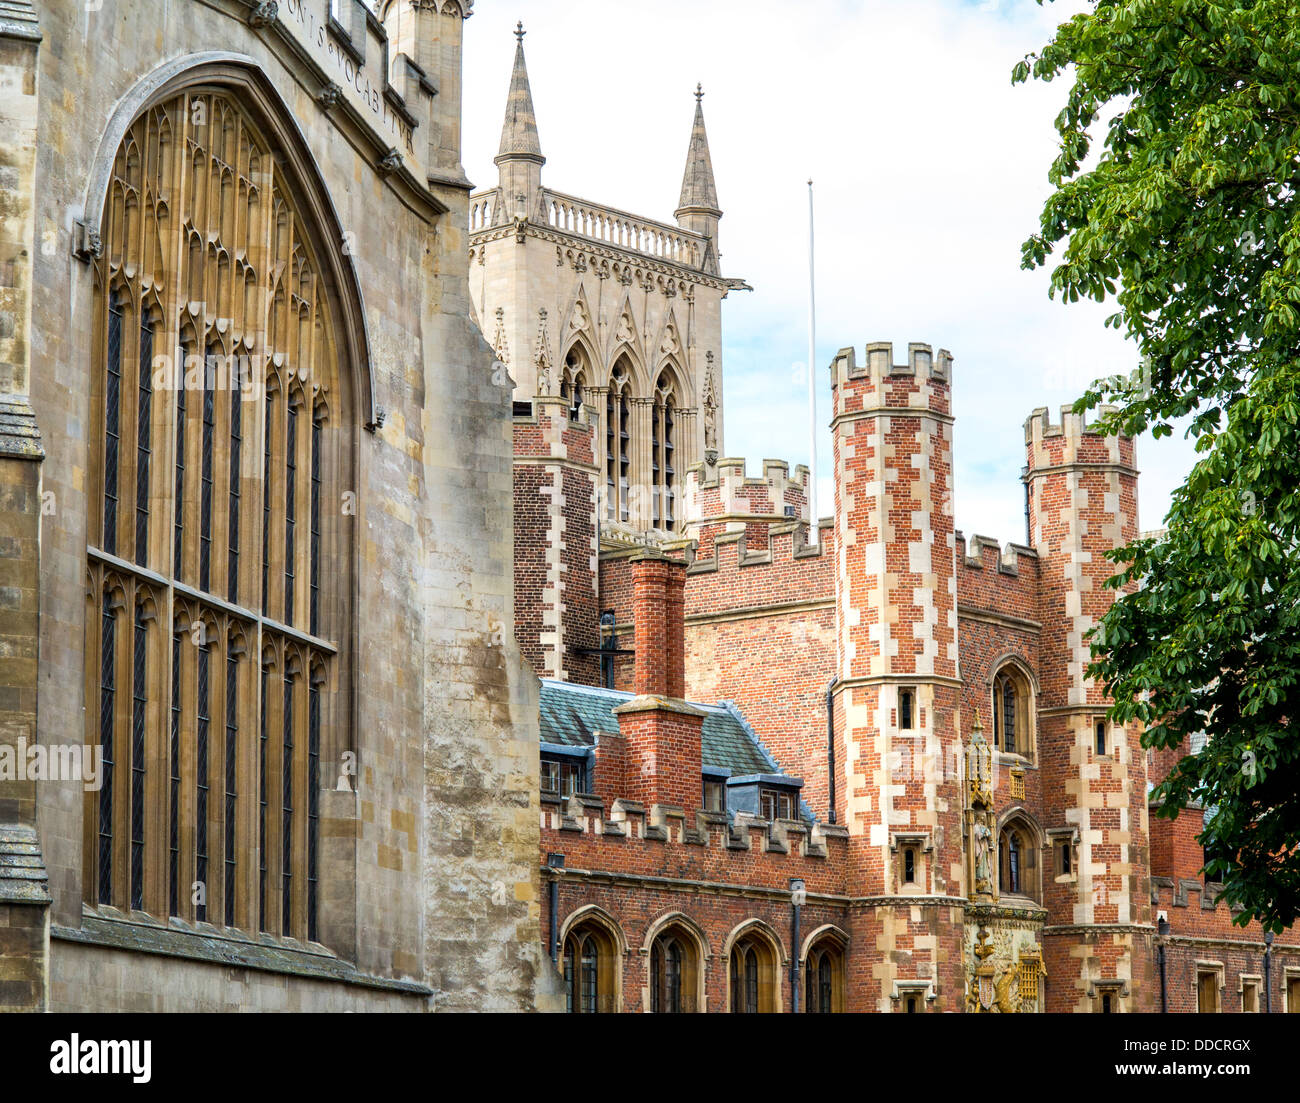 St John's College and historic buildings in Trinity Street, Cambridge, England. - Stock Image